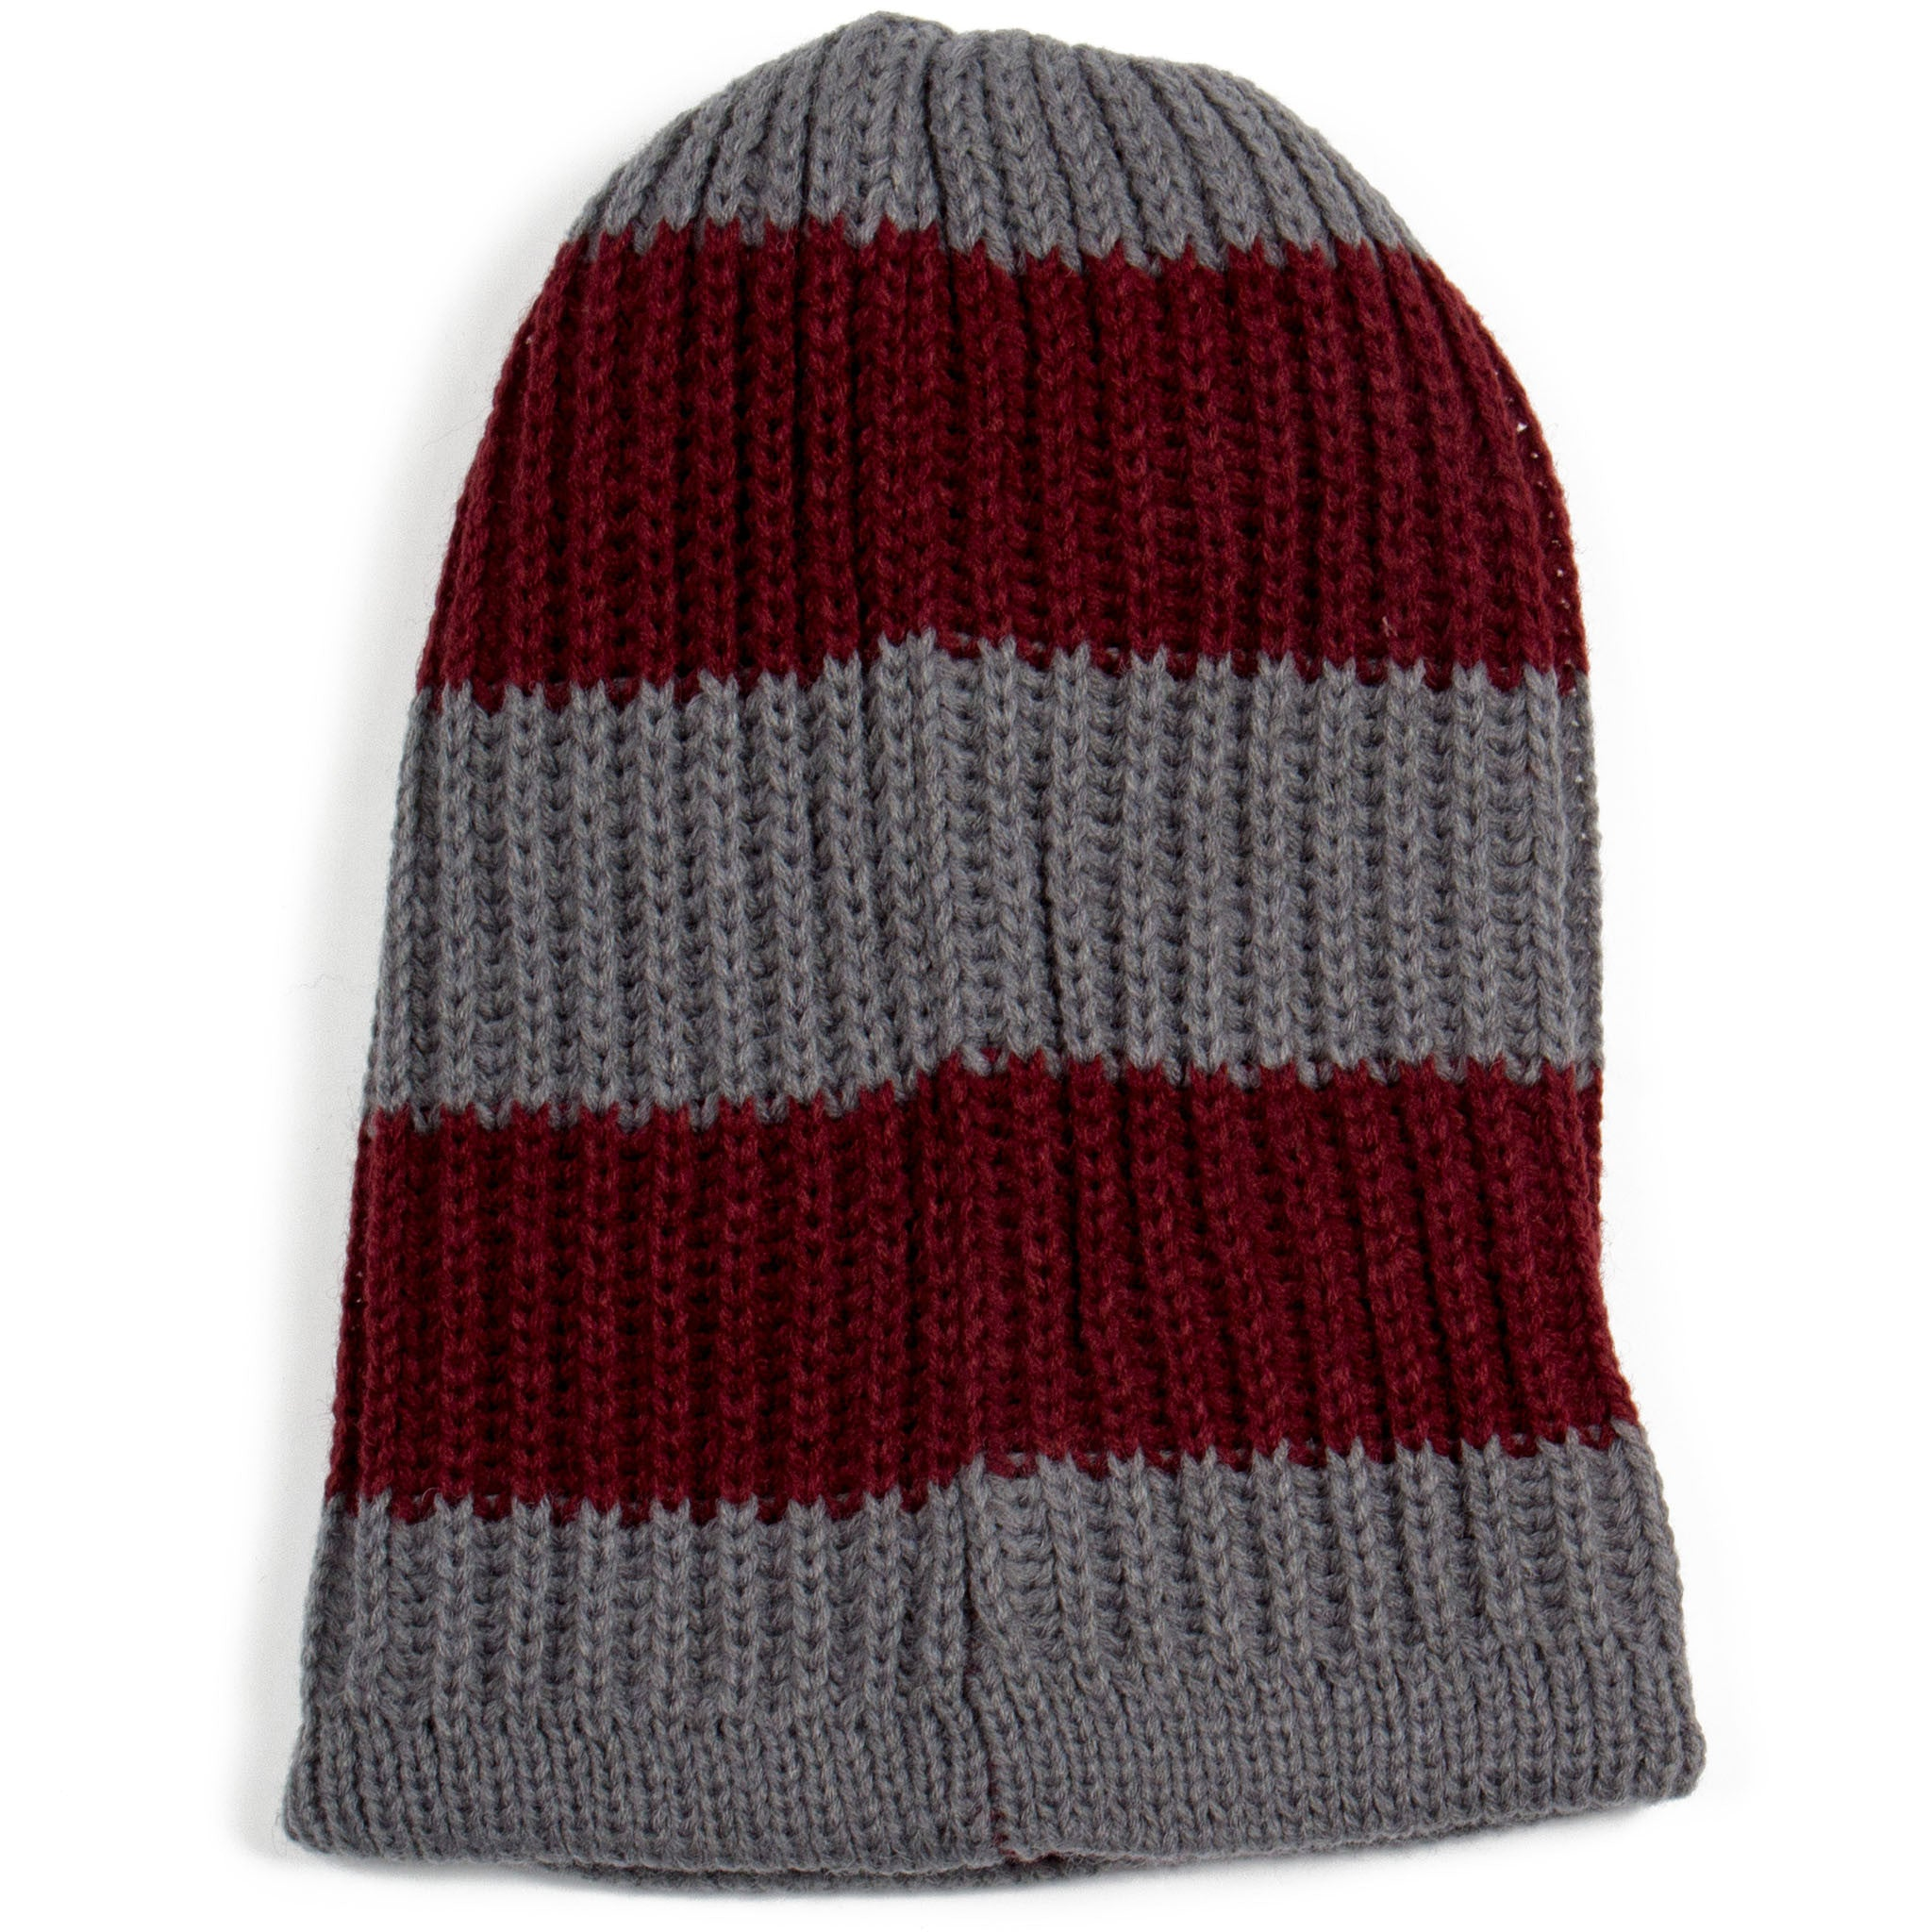 mafia beanie dove grey - Stoked Boardshop